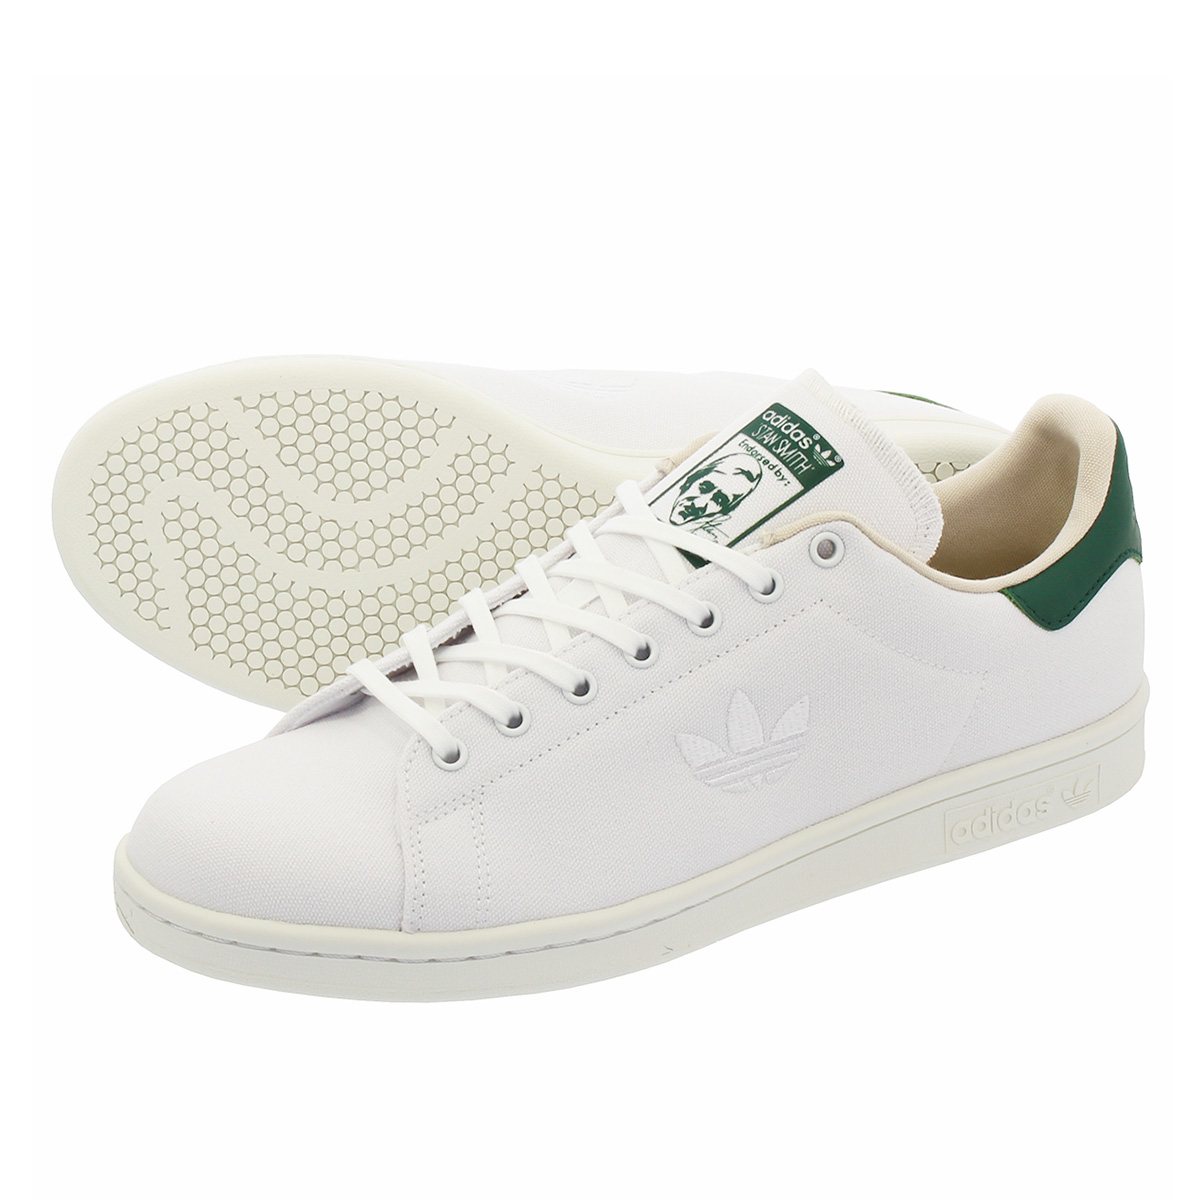 newest 8ae27 71f2b adidas STAN SMITH Adidas Stan Smith RUNNING WHITE/RUNNING WHITE/COLLEGE  GREEN d96737